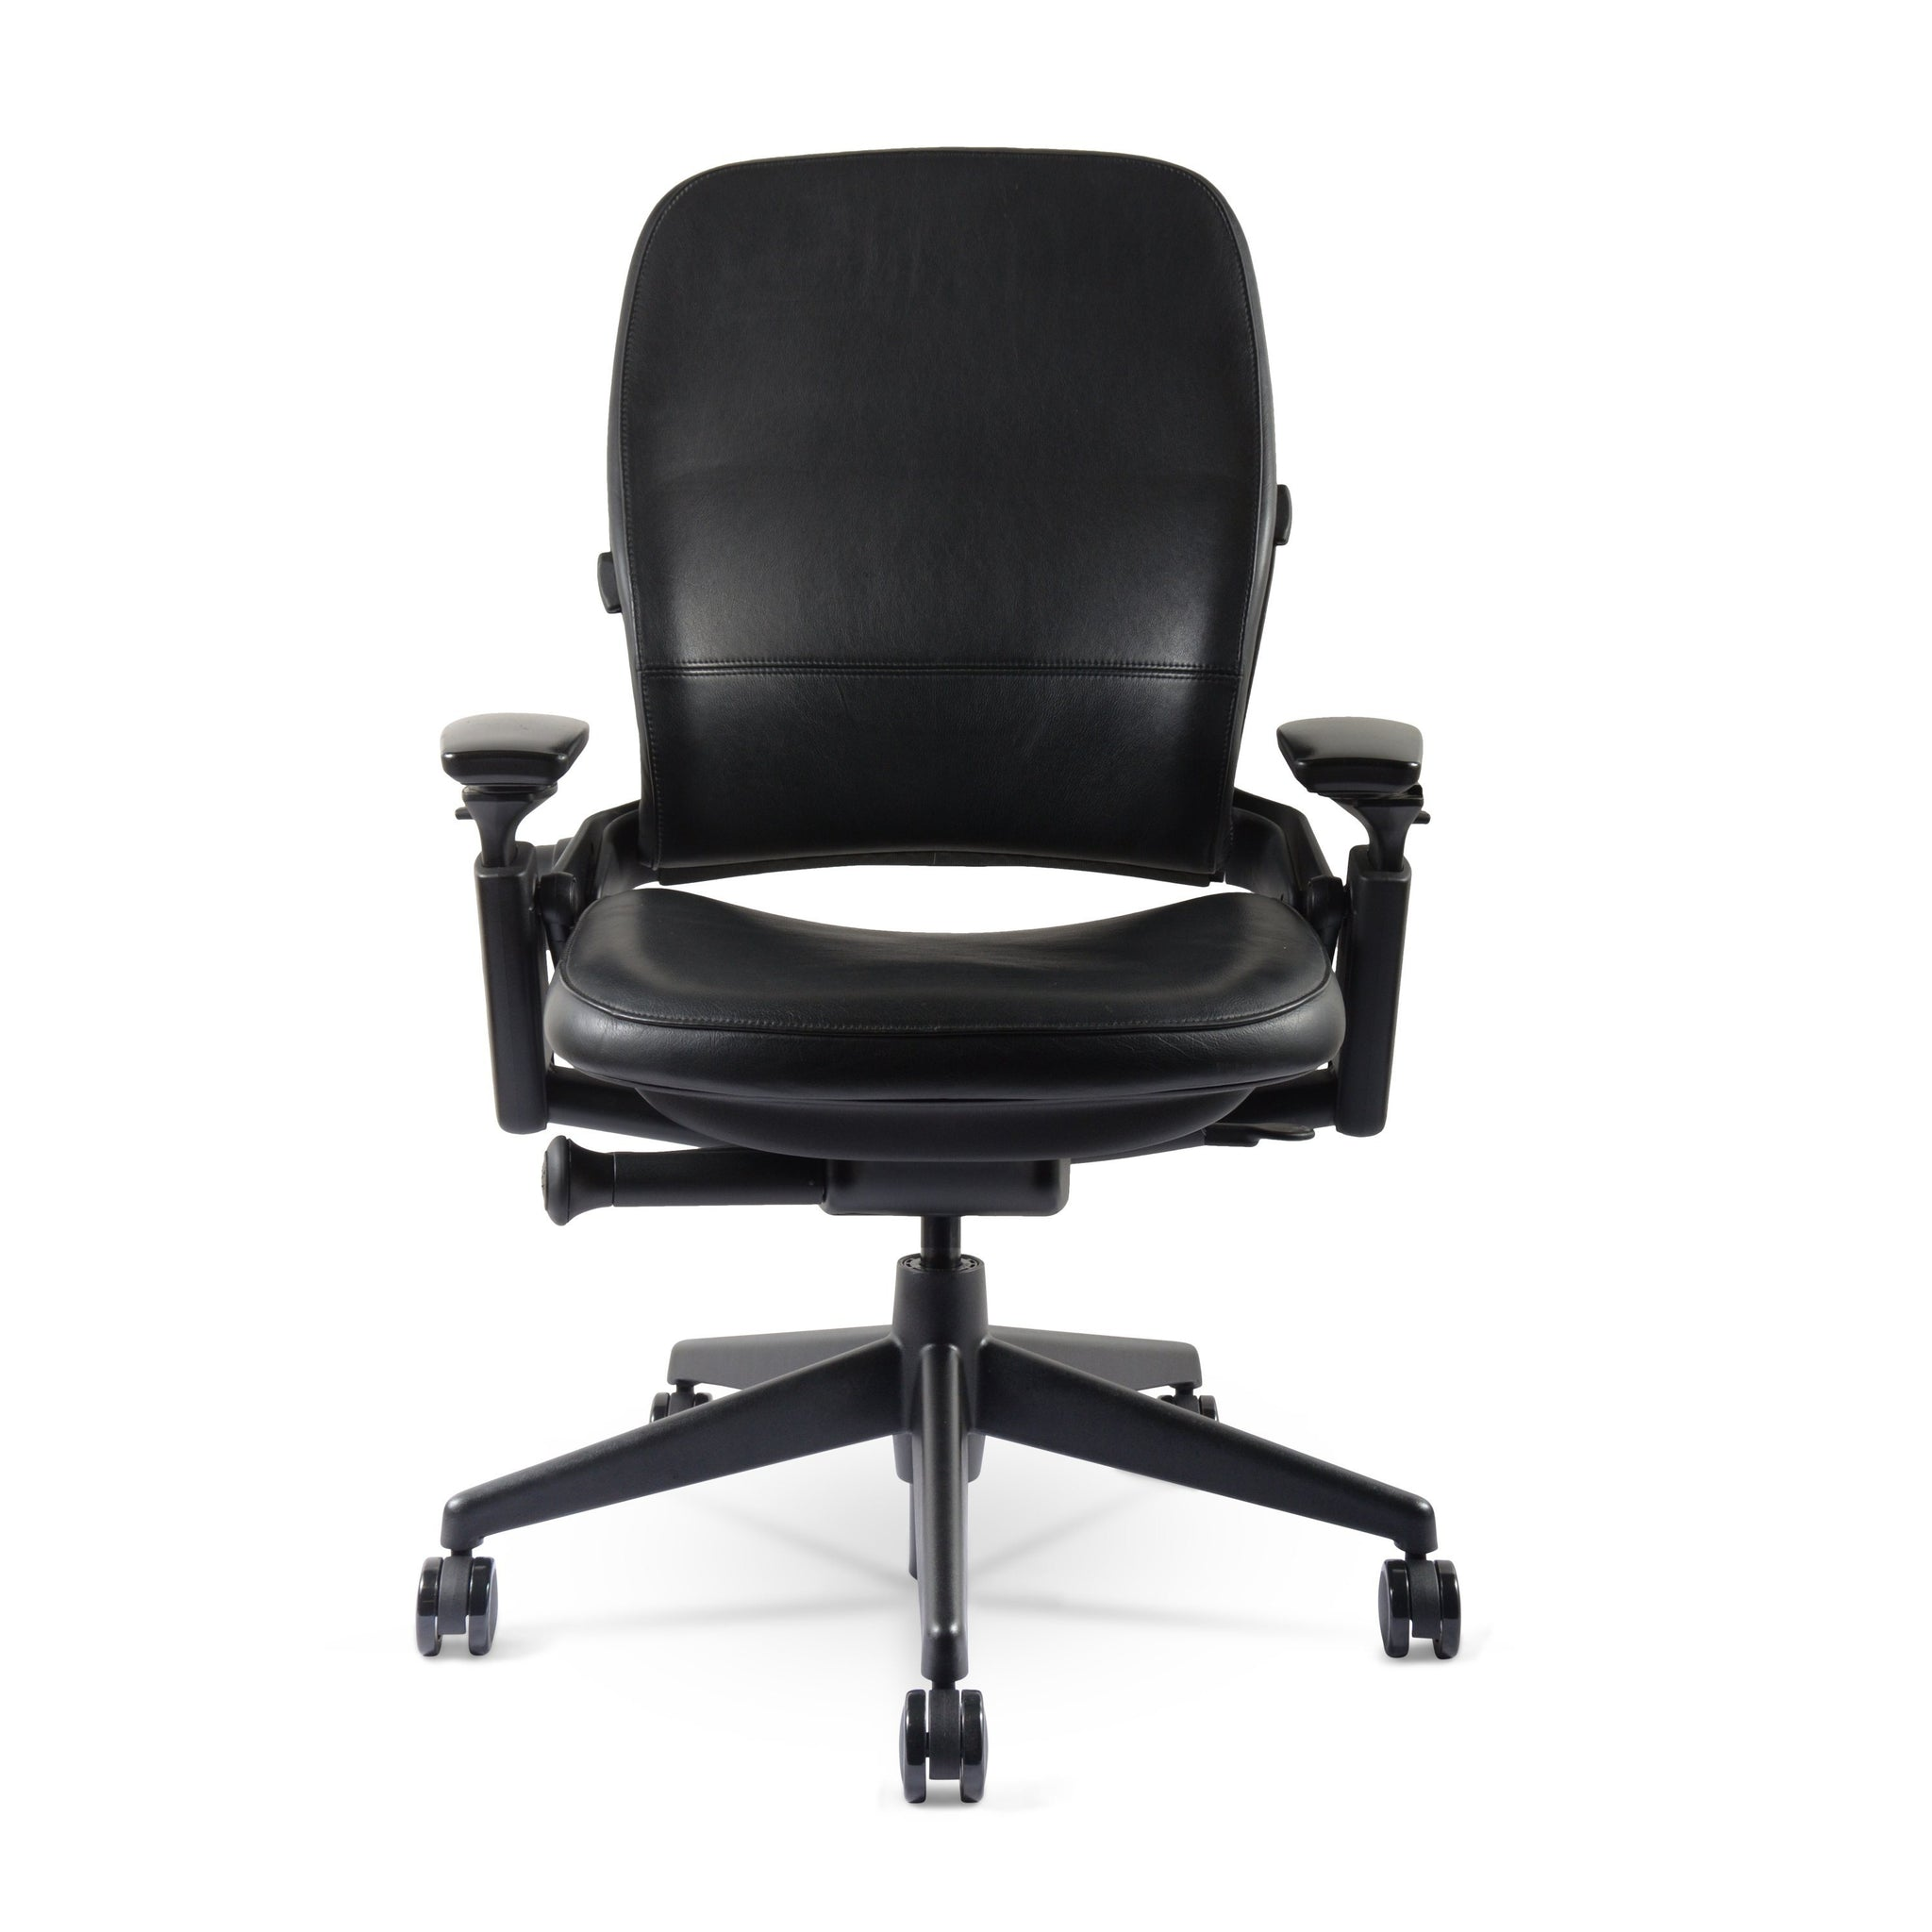 Steelcase Leap chair V36(Renewed)  Black  Leather– chairorama